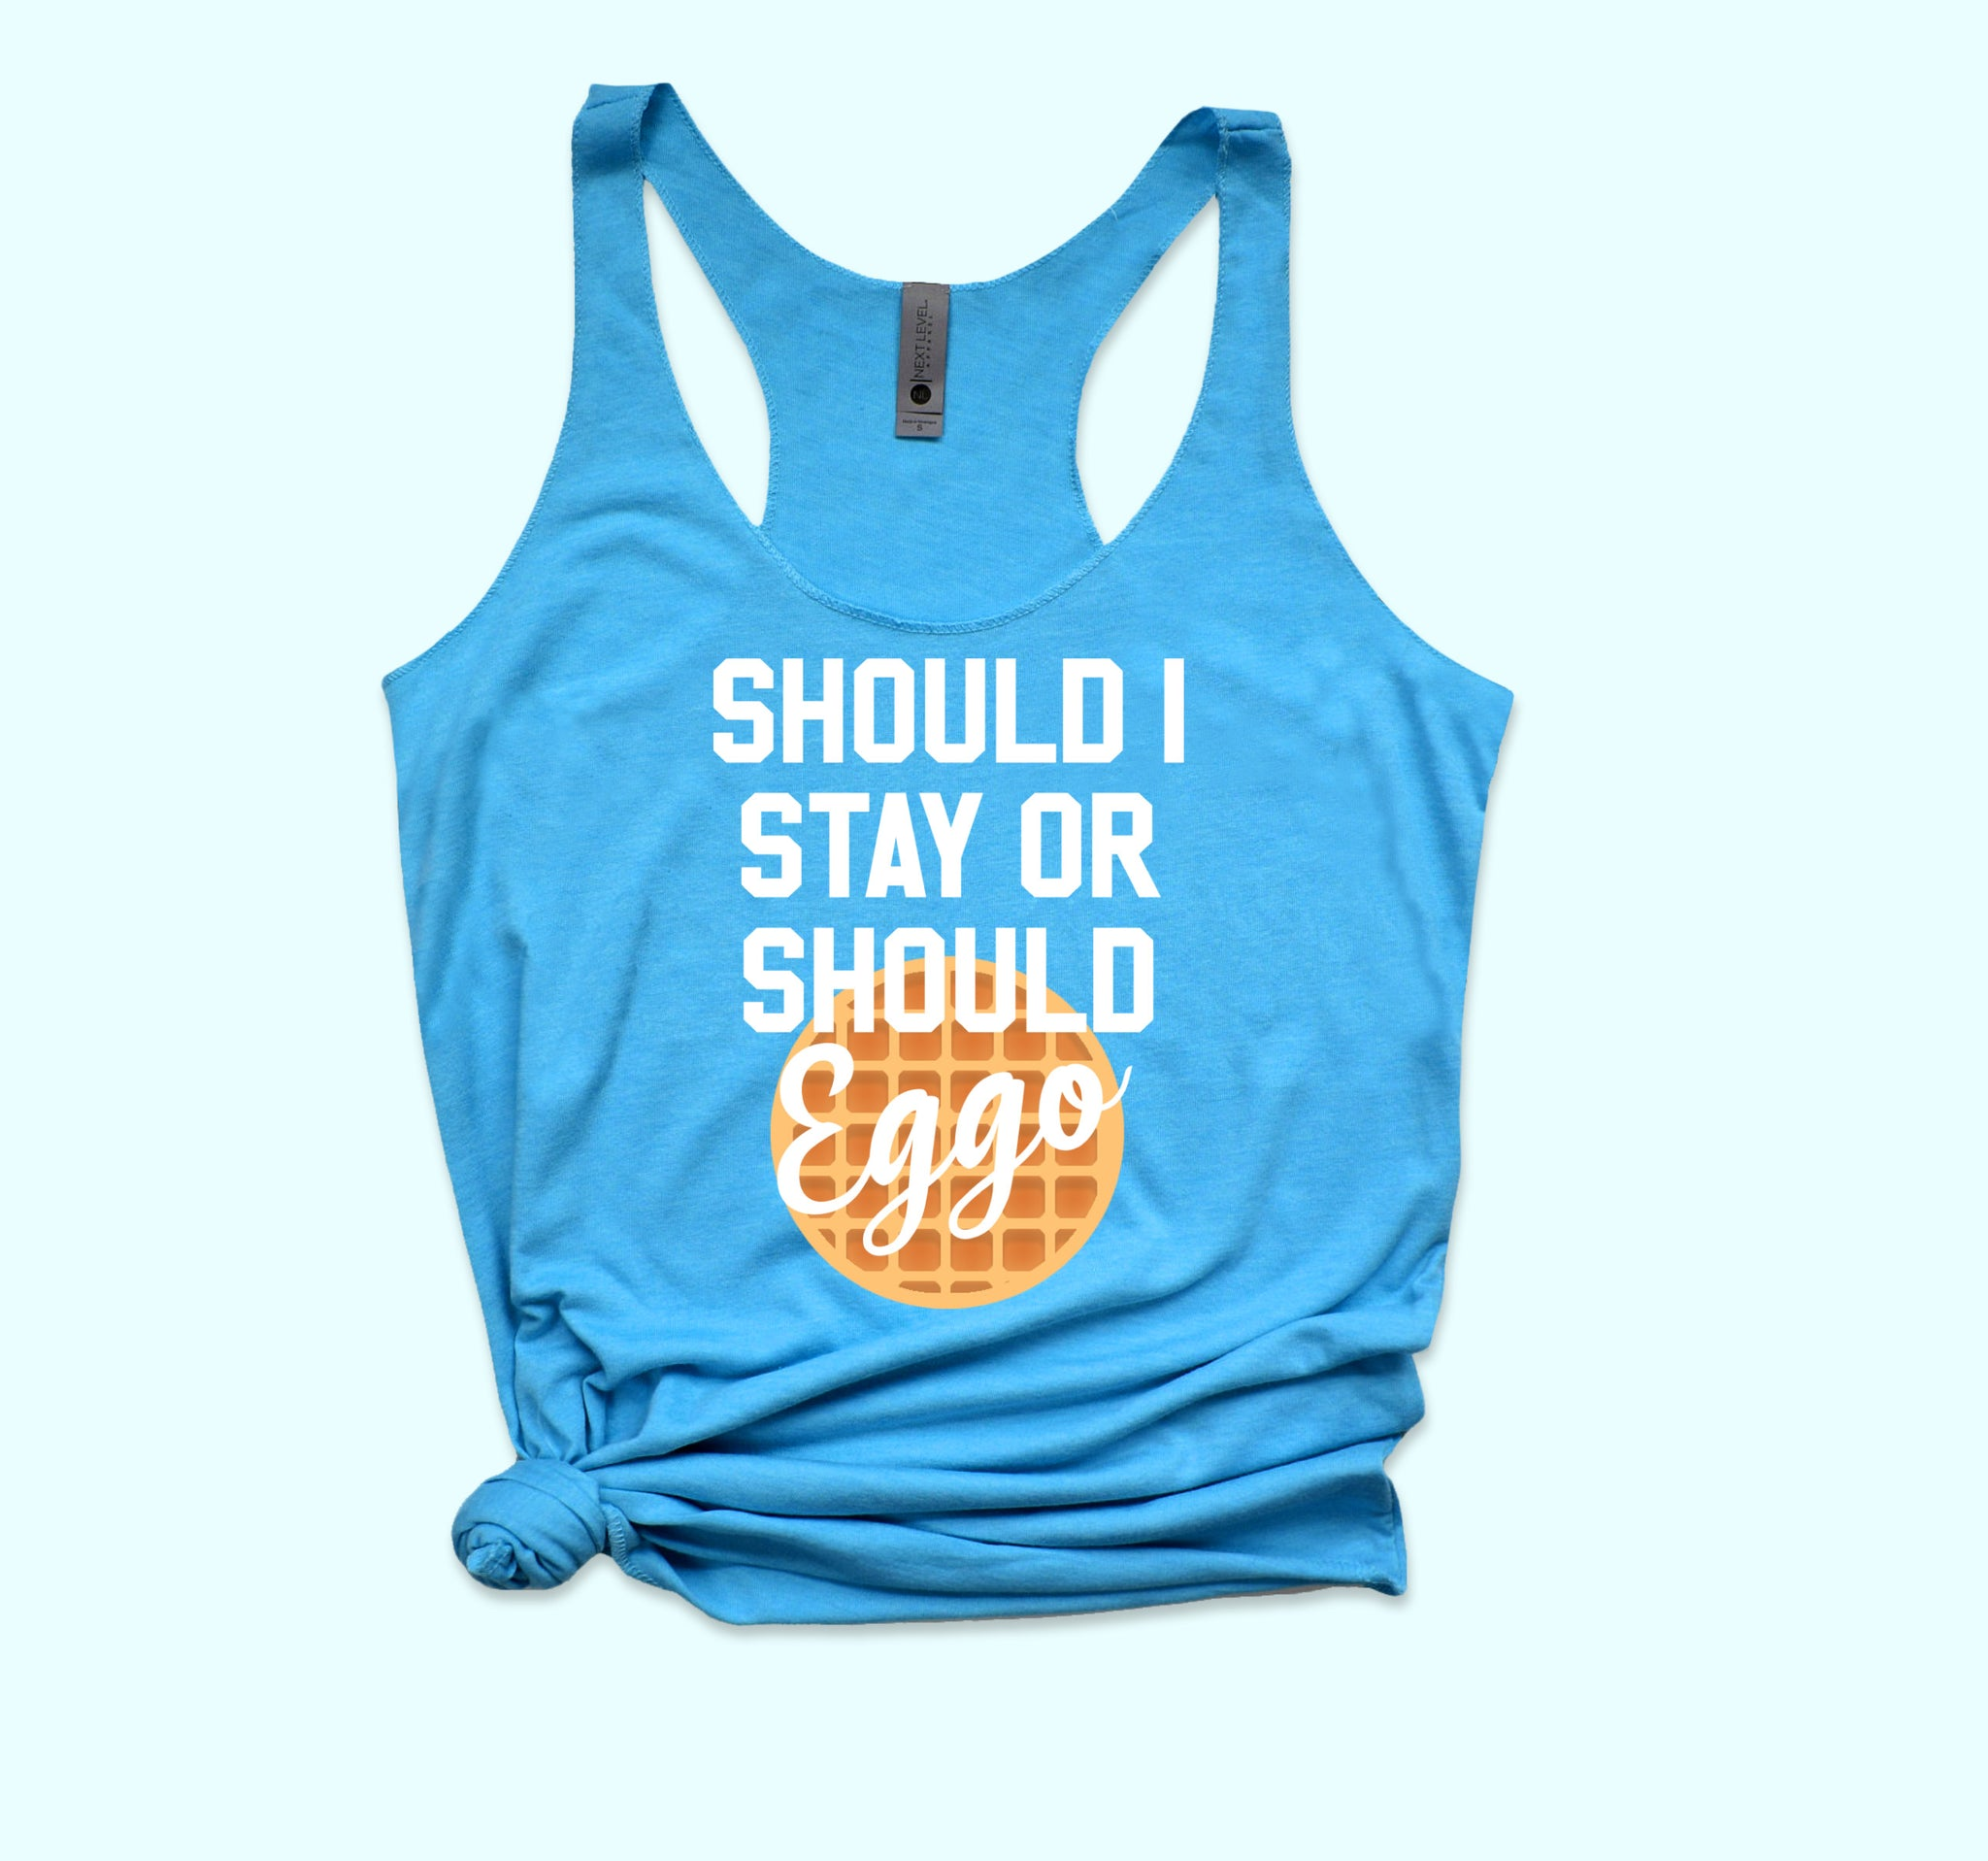 Should I Stay Or Should Eggo Tank